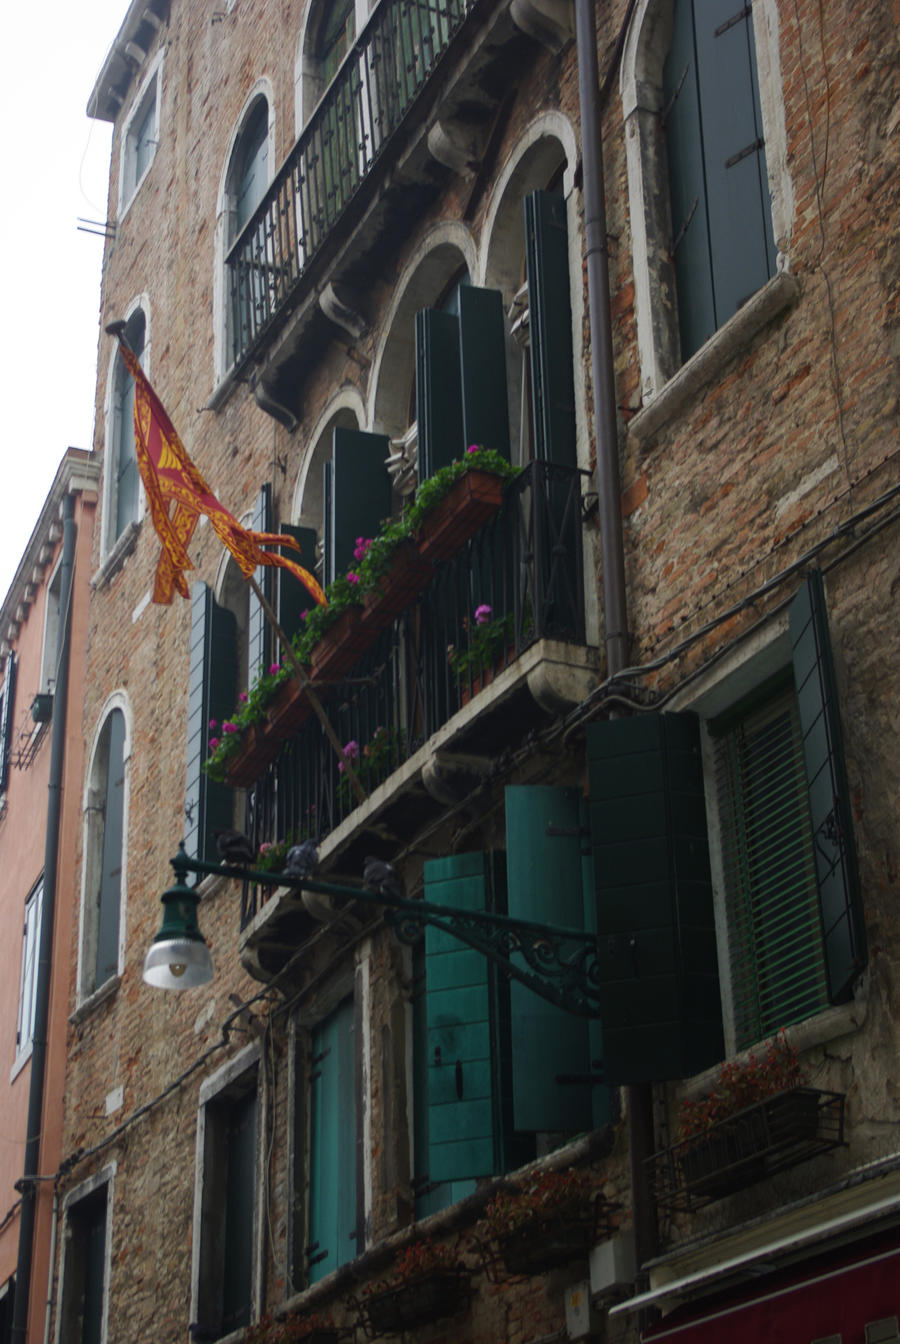 Venetian architecture 5 by jennystokes